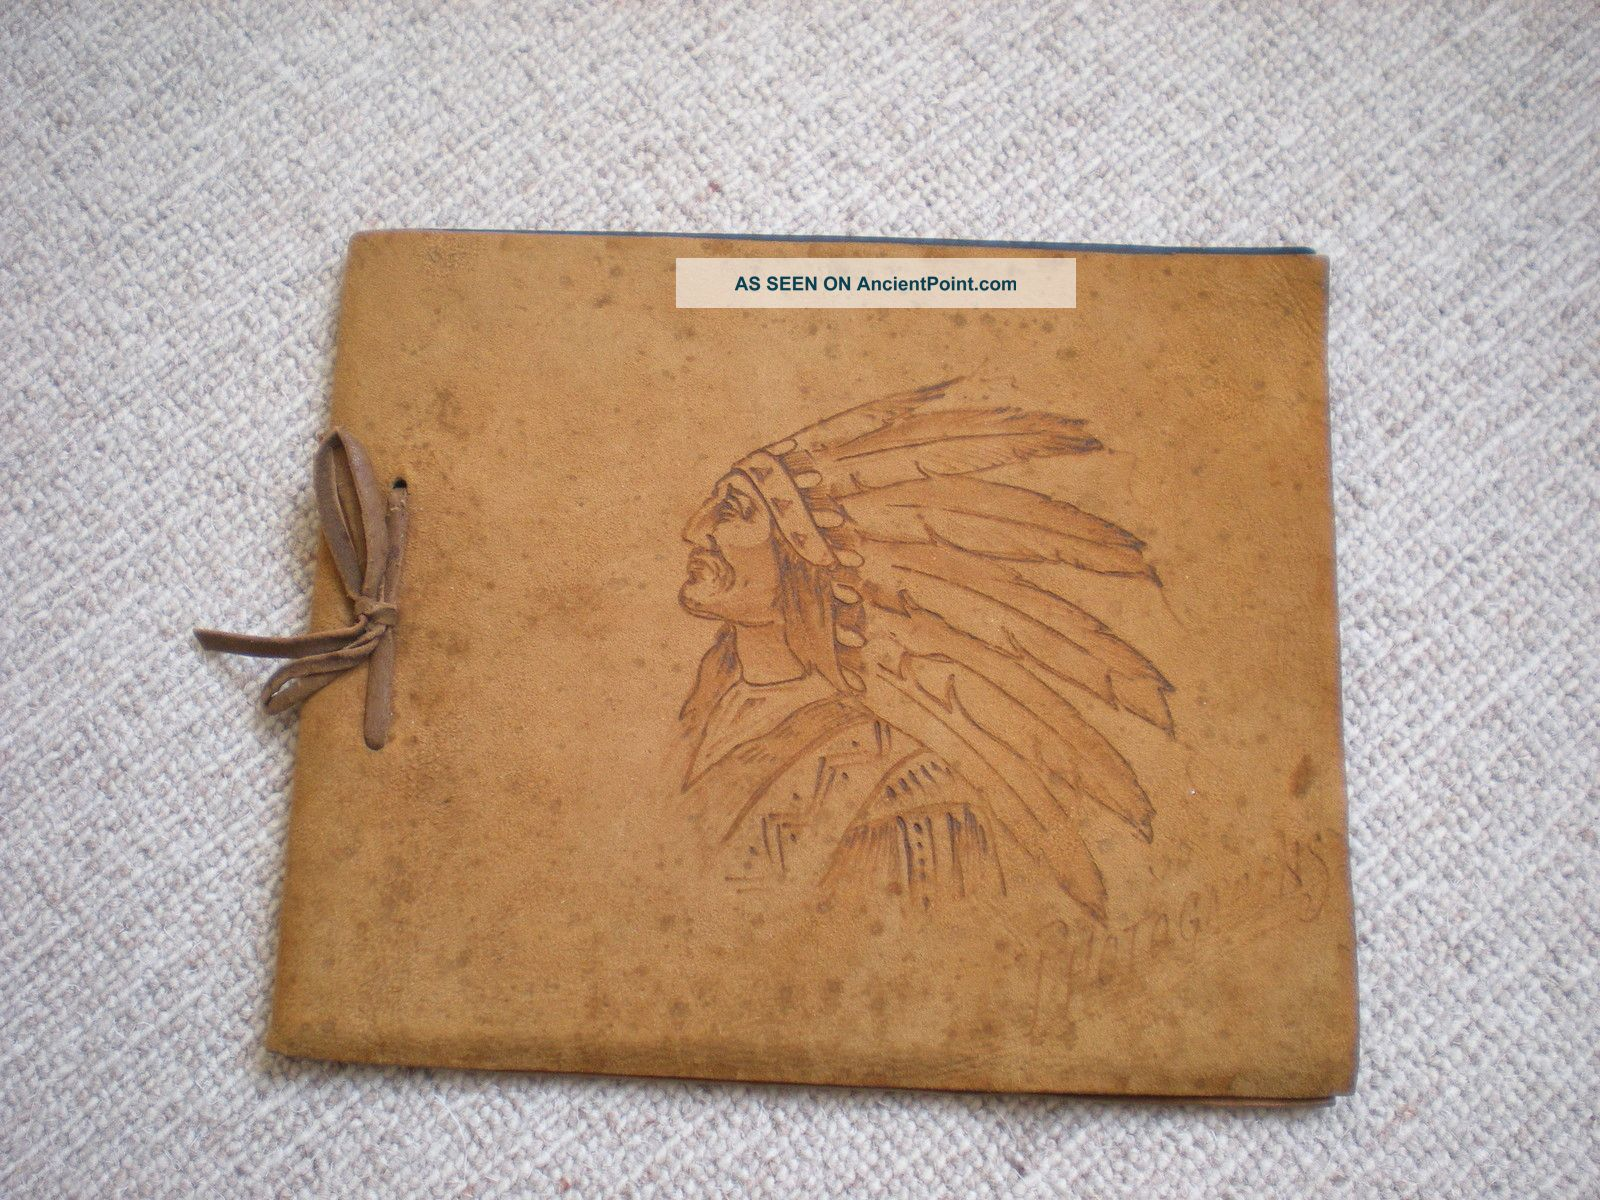 Vintage Native American Suede Photograph Album Canada Western Usa Tribal Native American photo